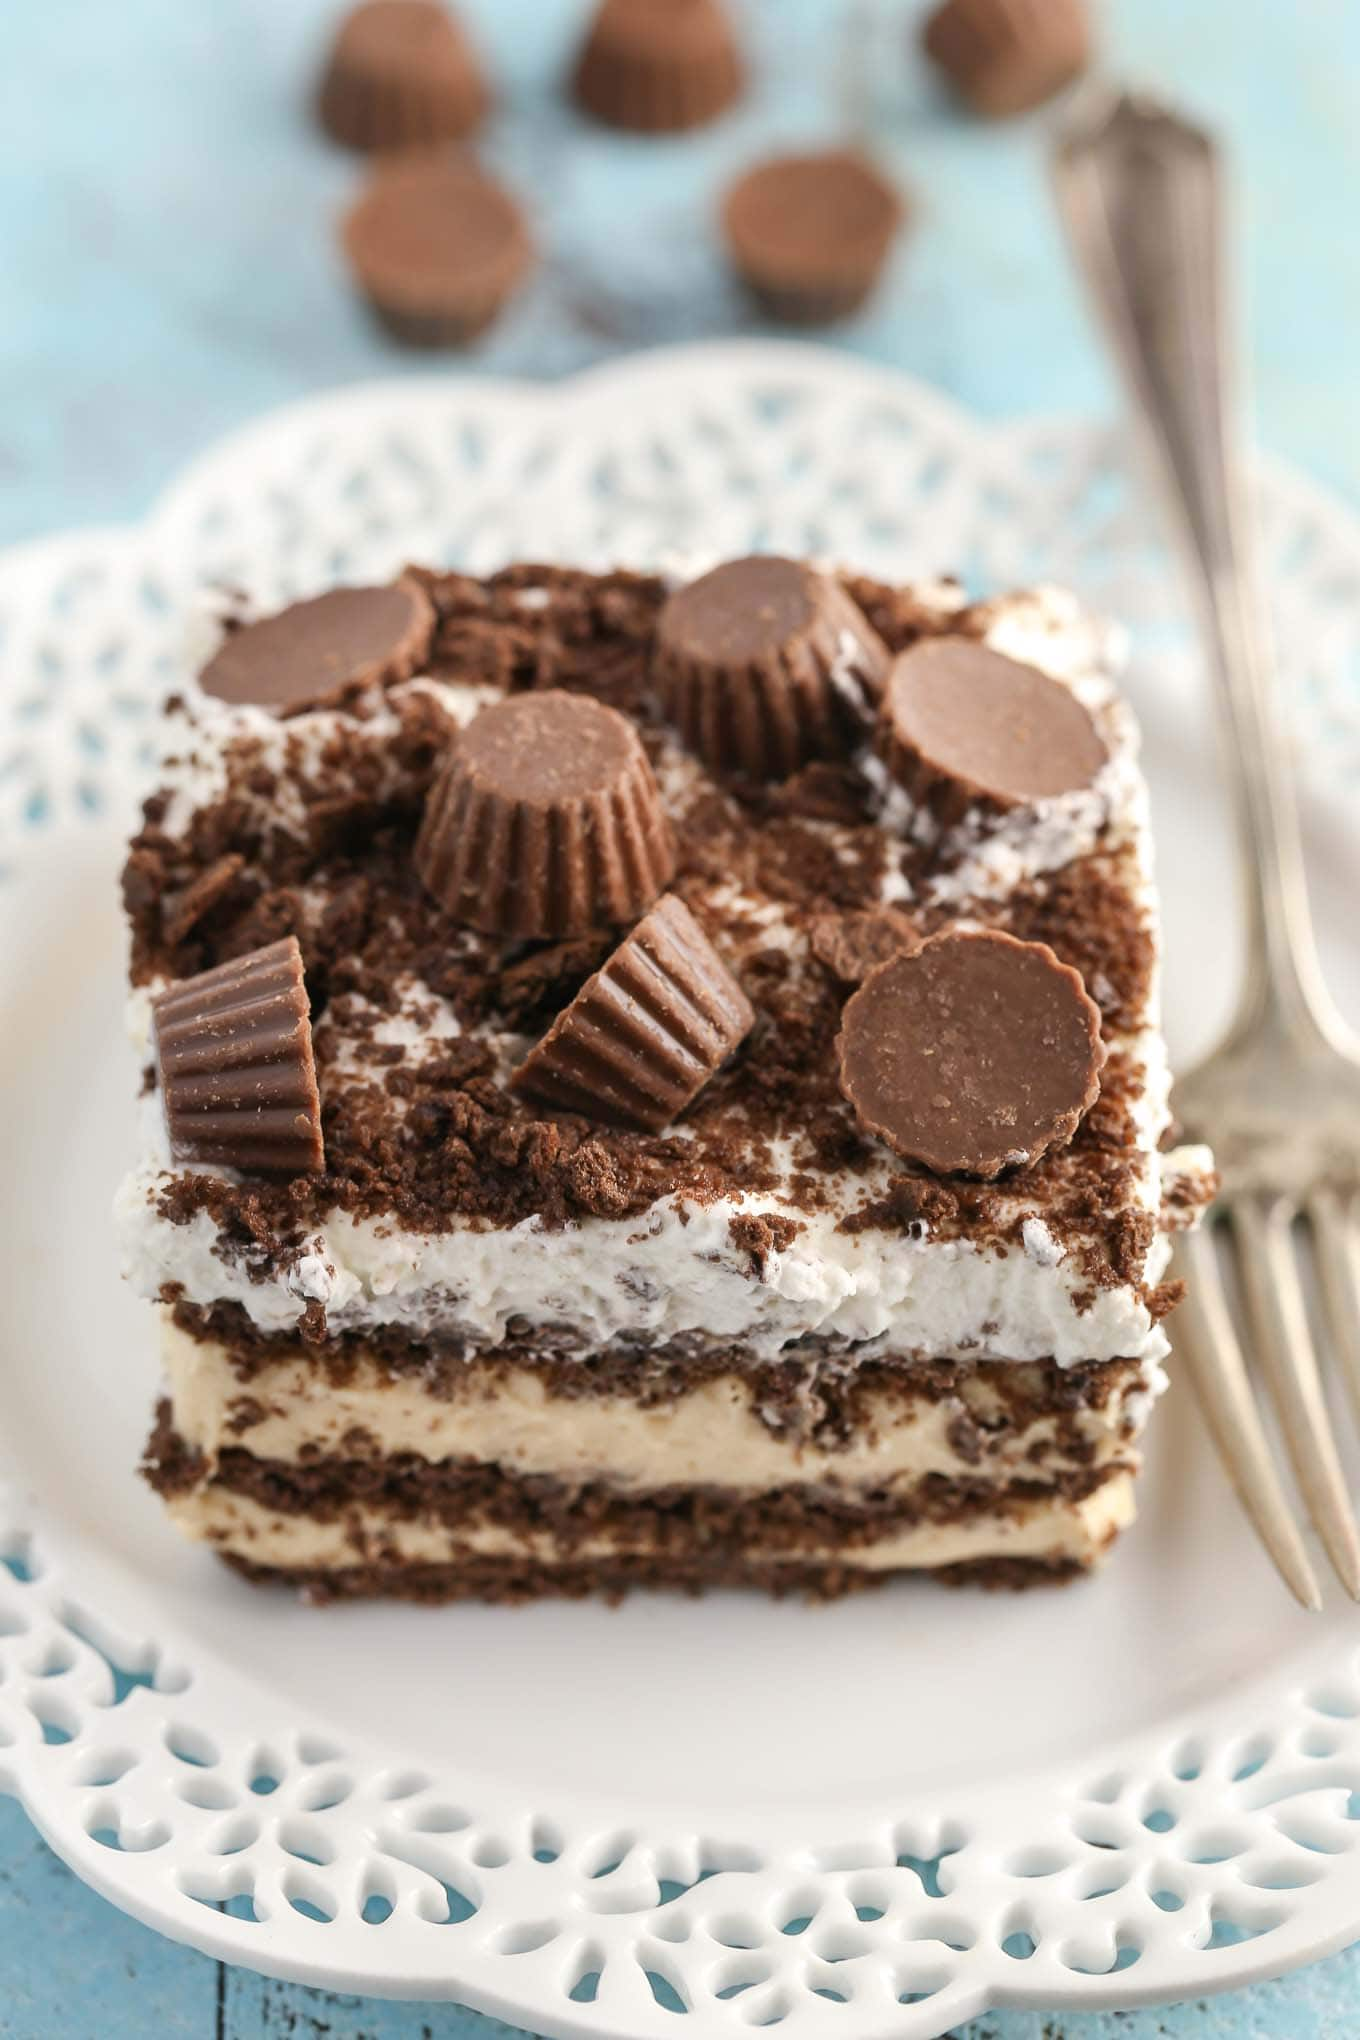 Chocolate Peanut Butter Icebox Cake - Live Well Bake Often